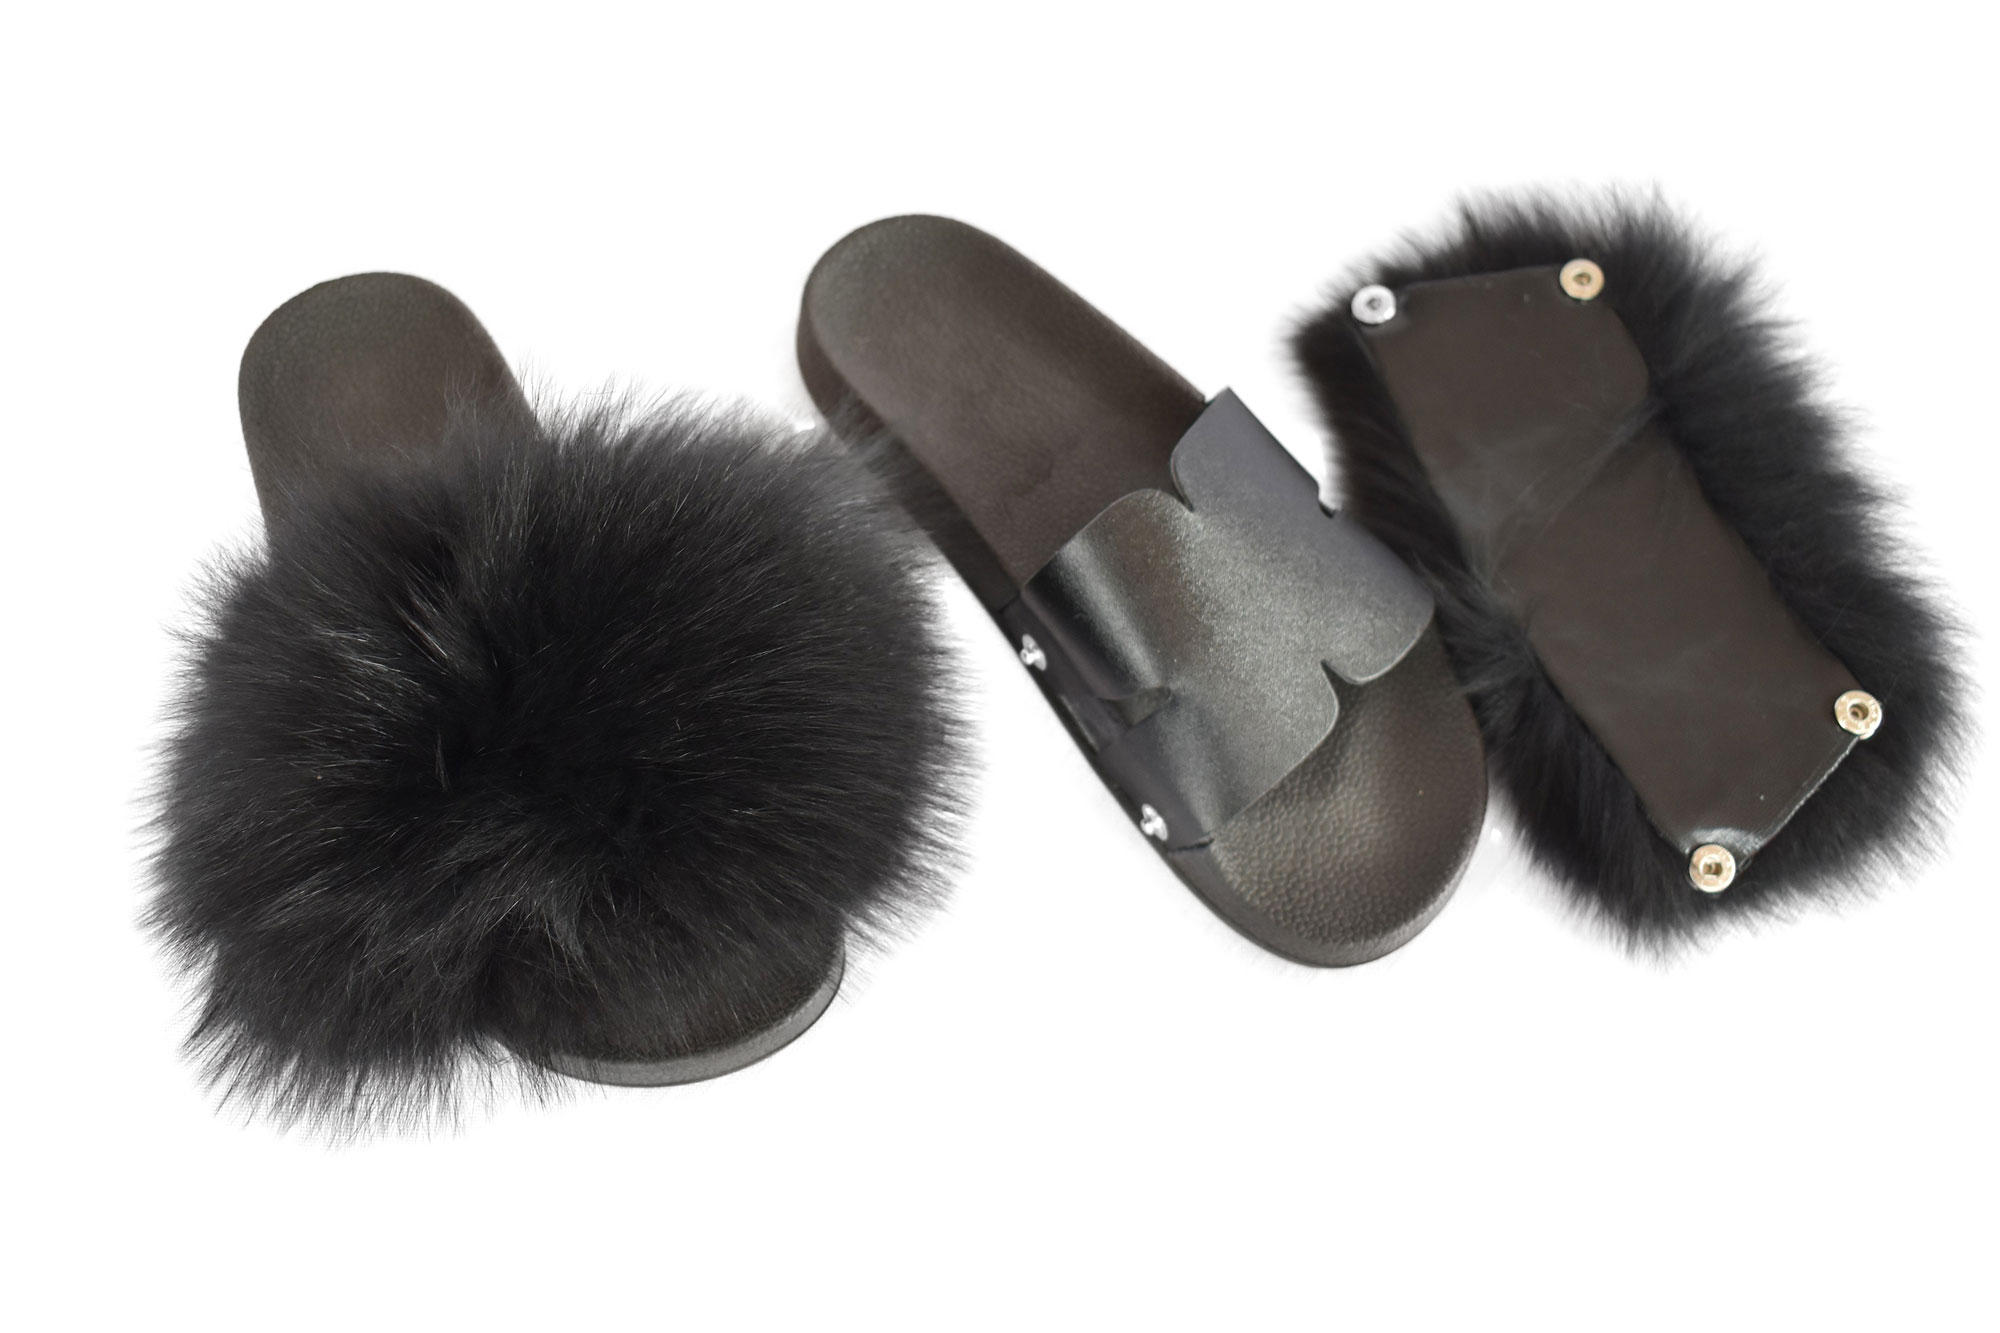 Black Fur Slides In Your Own Style